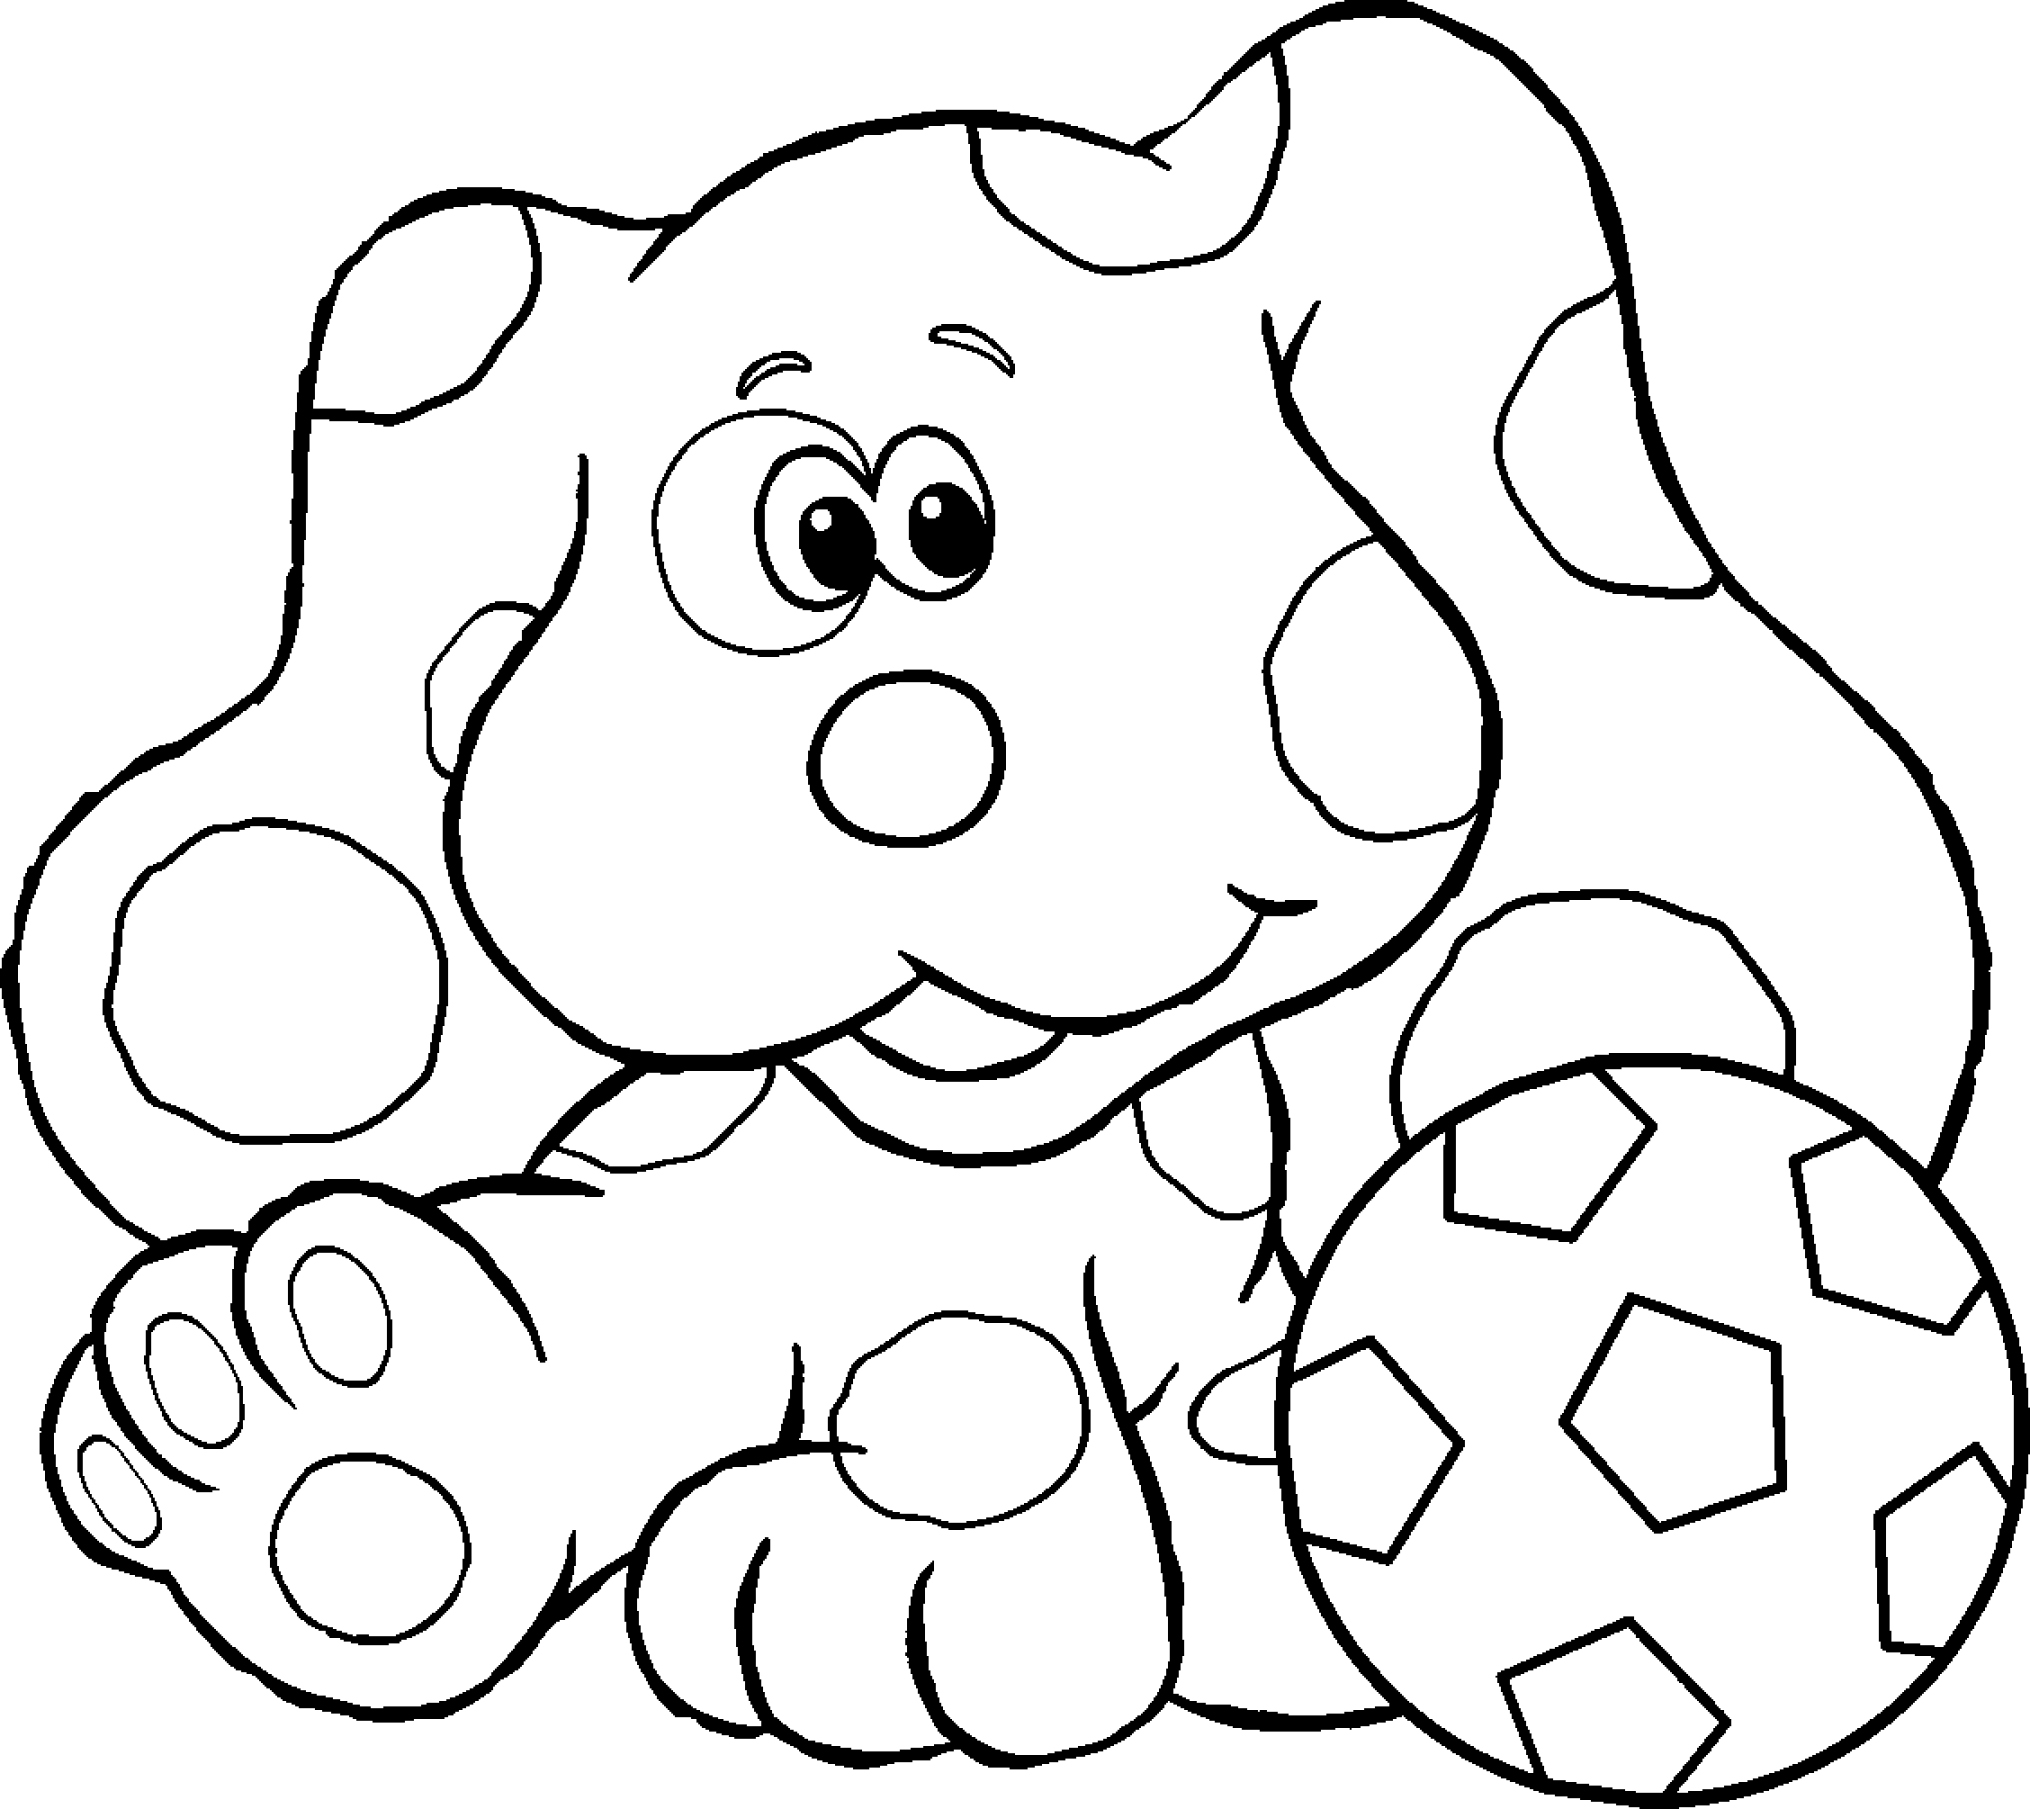 Blues Clues Drawing At Getdrawings